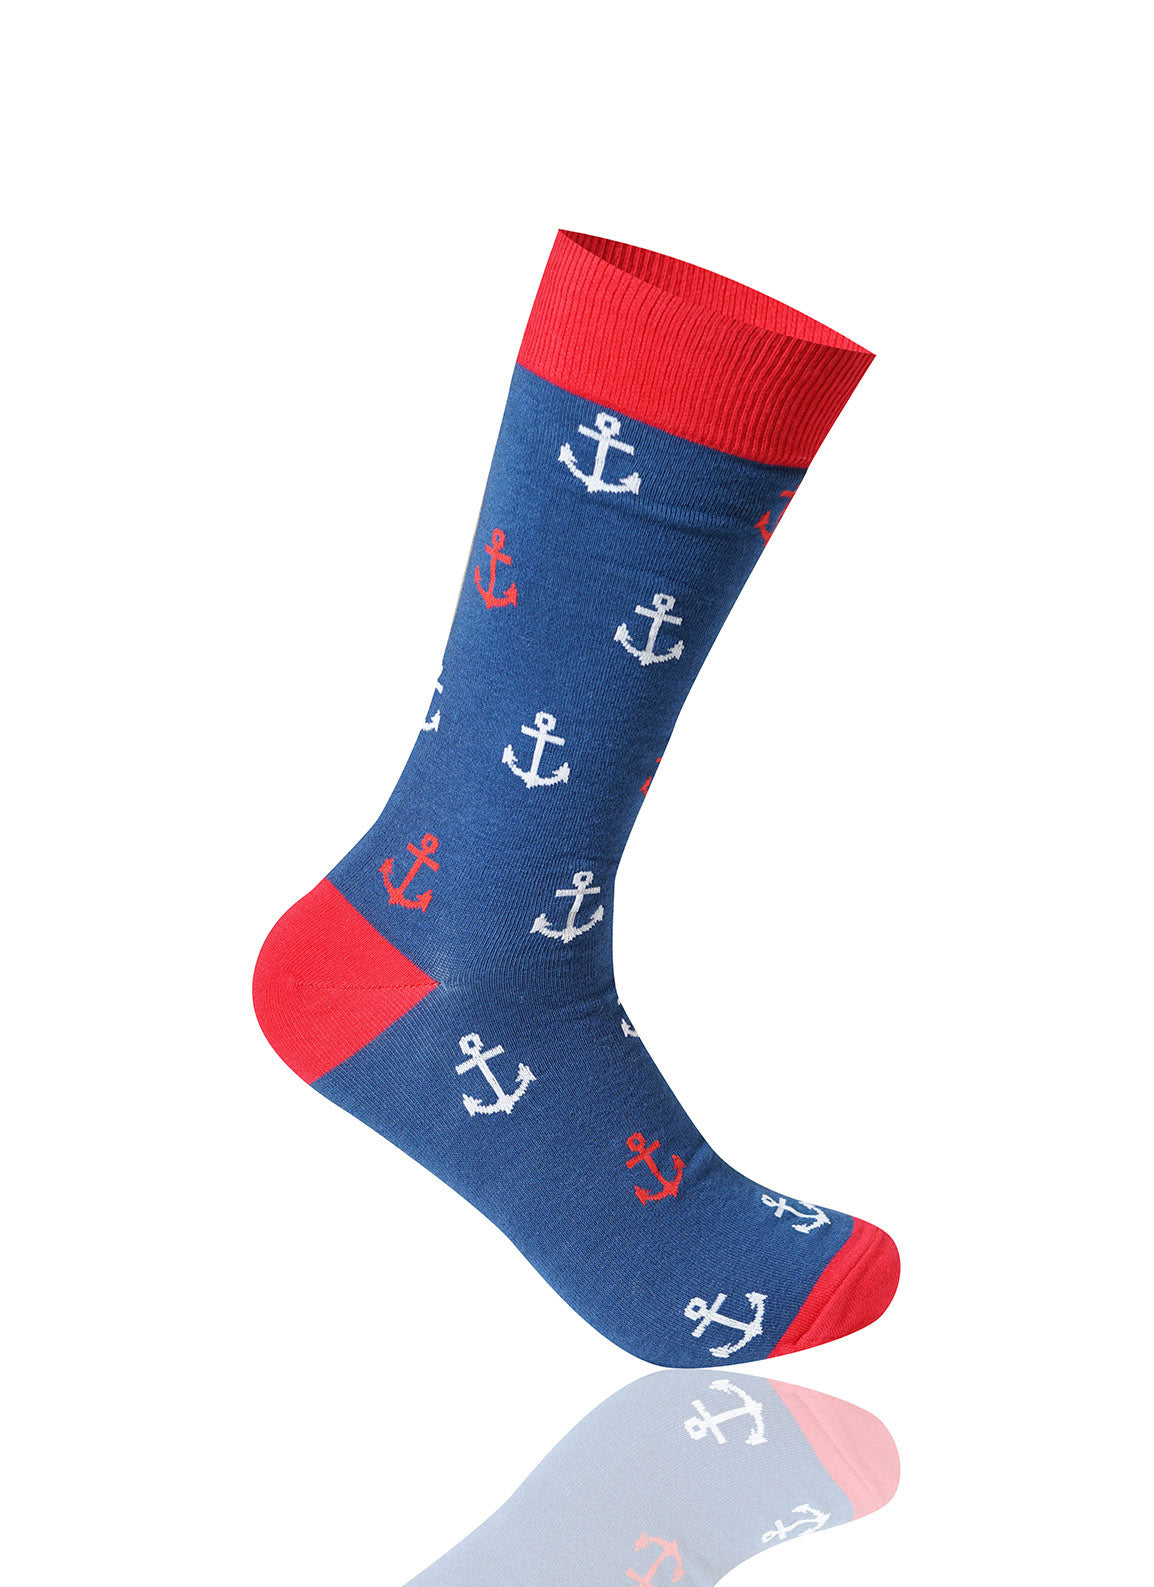 NAVY Anchor Novelty Socks - URBANCREWS